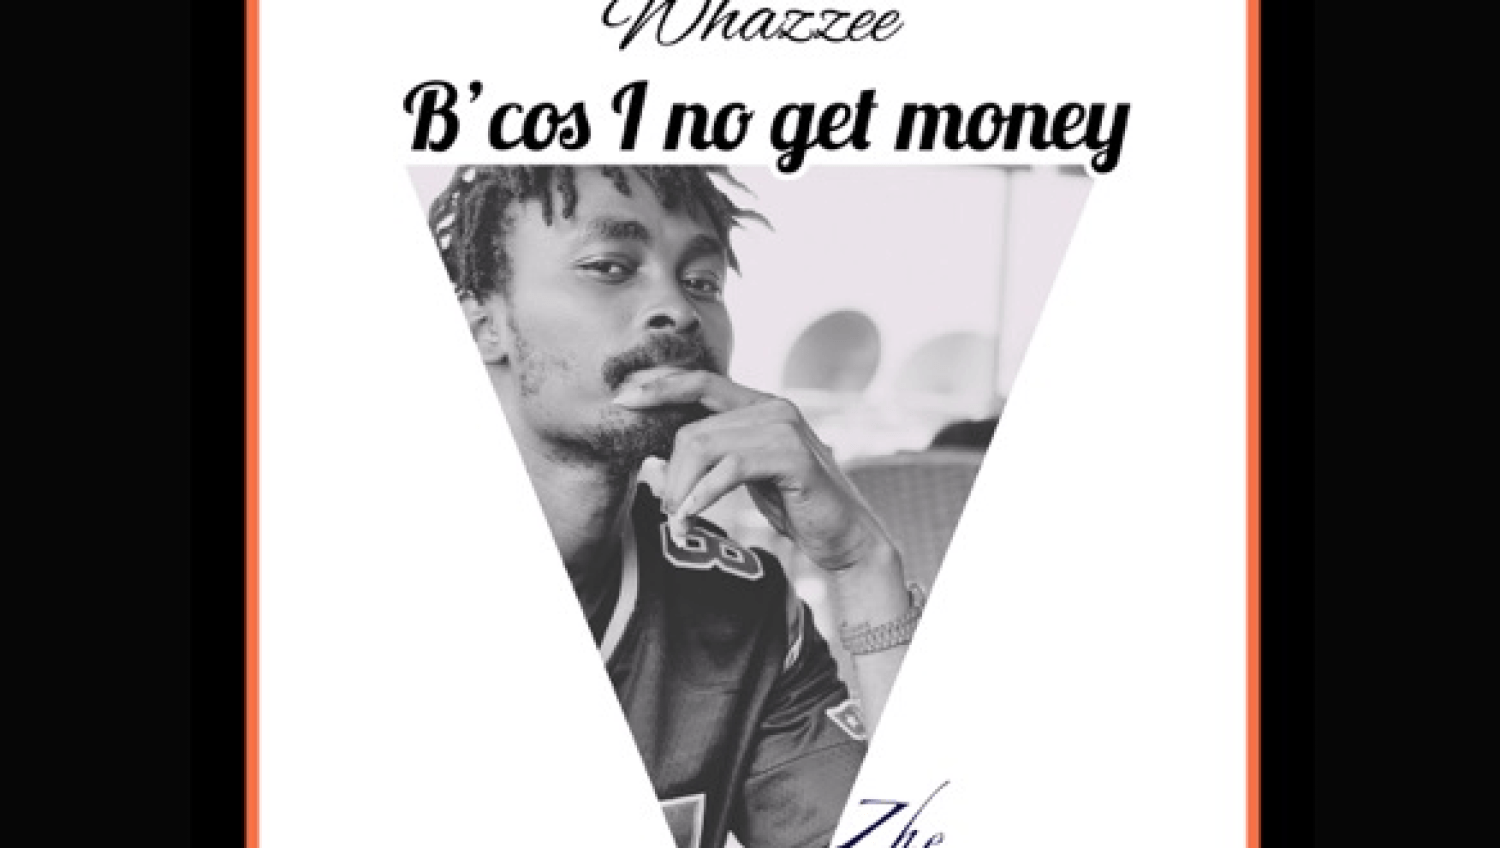 DOWNLOAD MP3: Whazzee – Because I No Get Money AUDIO 320kbps